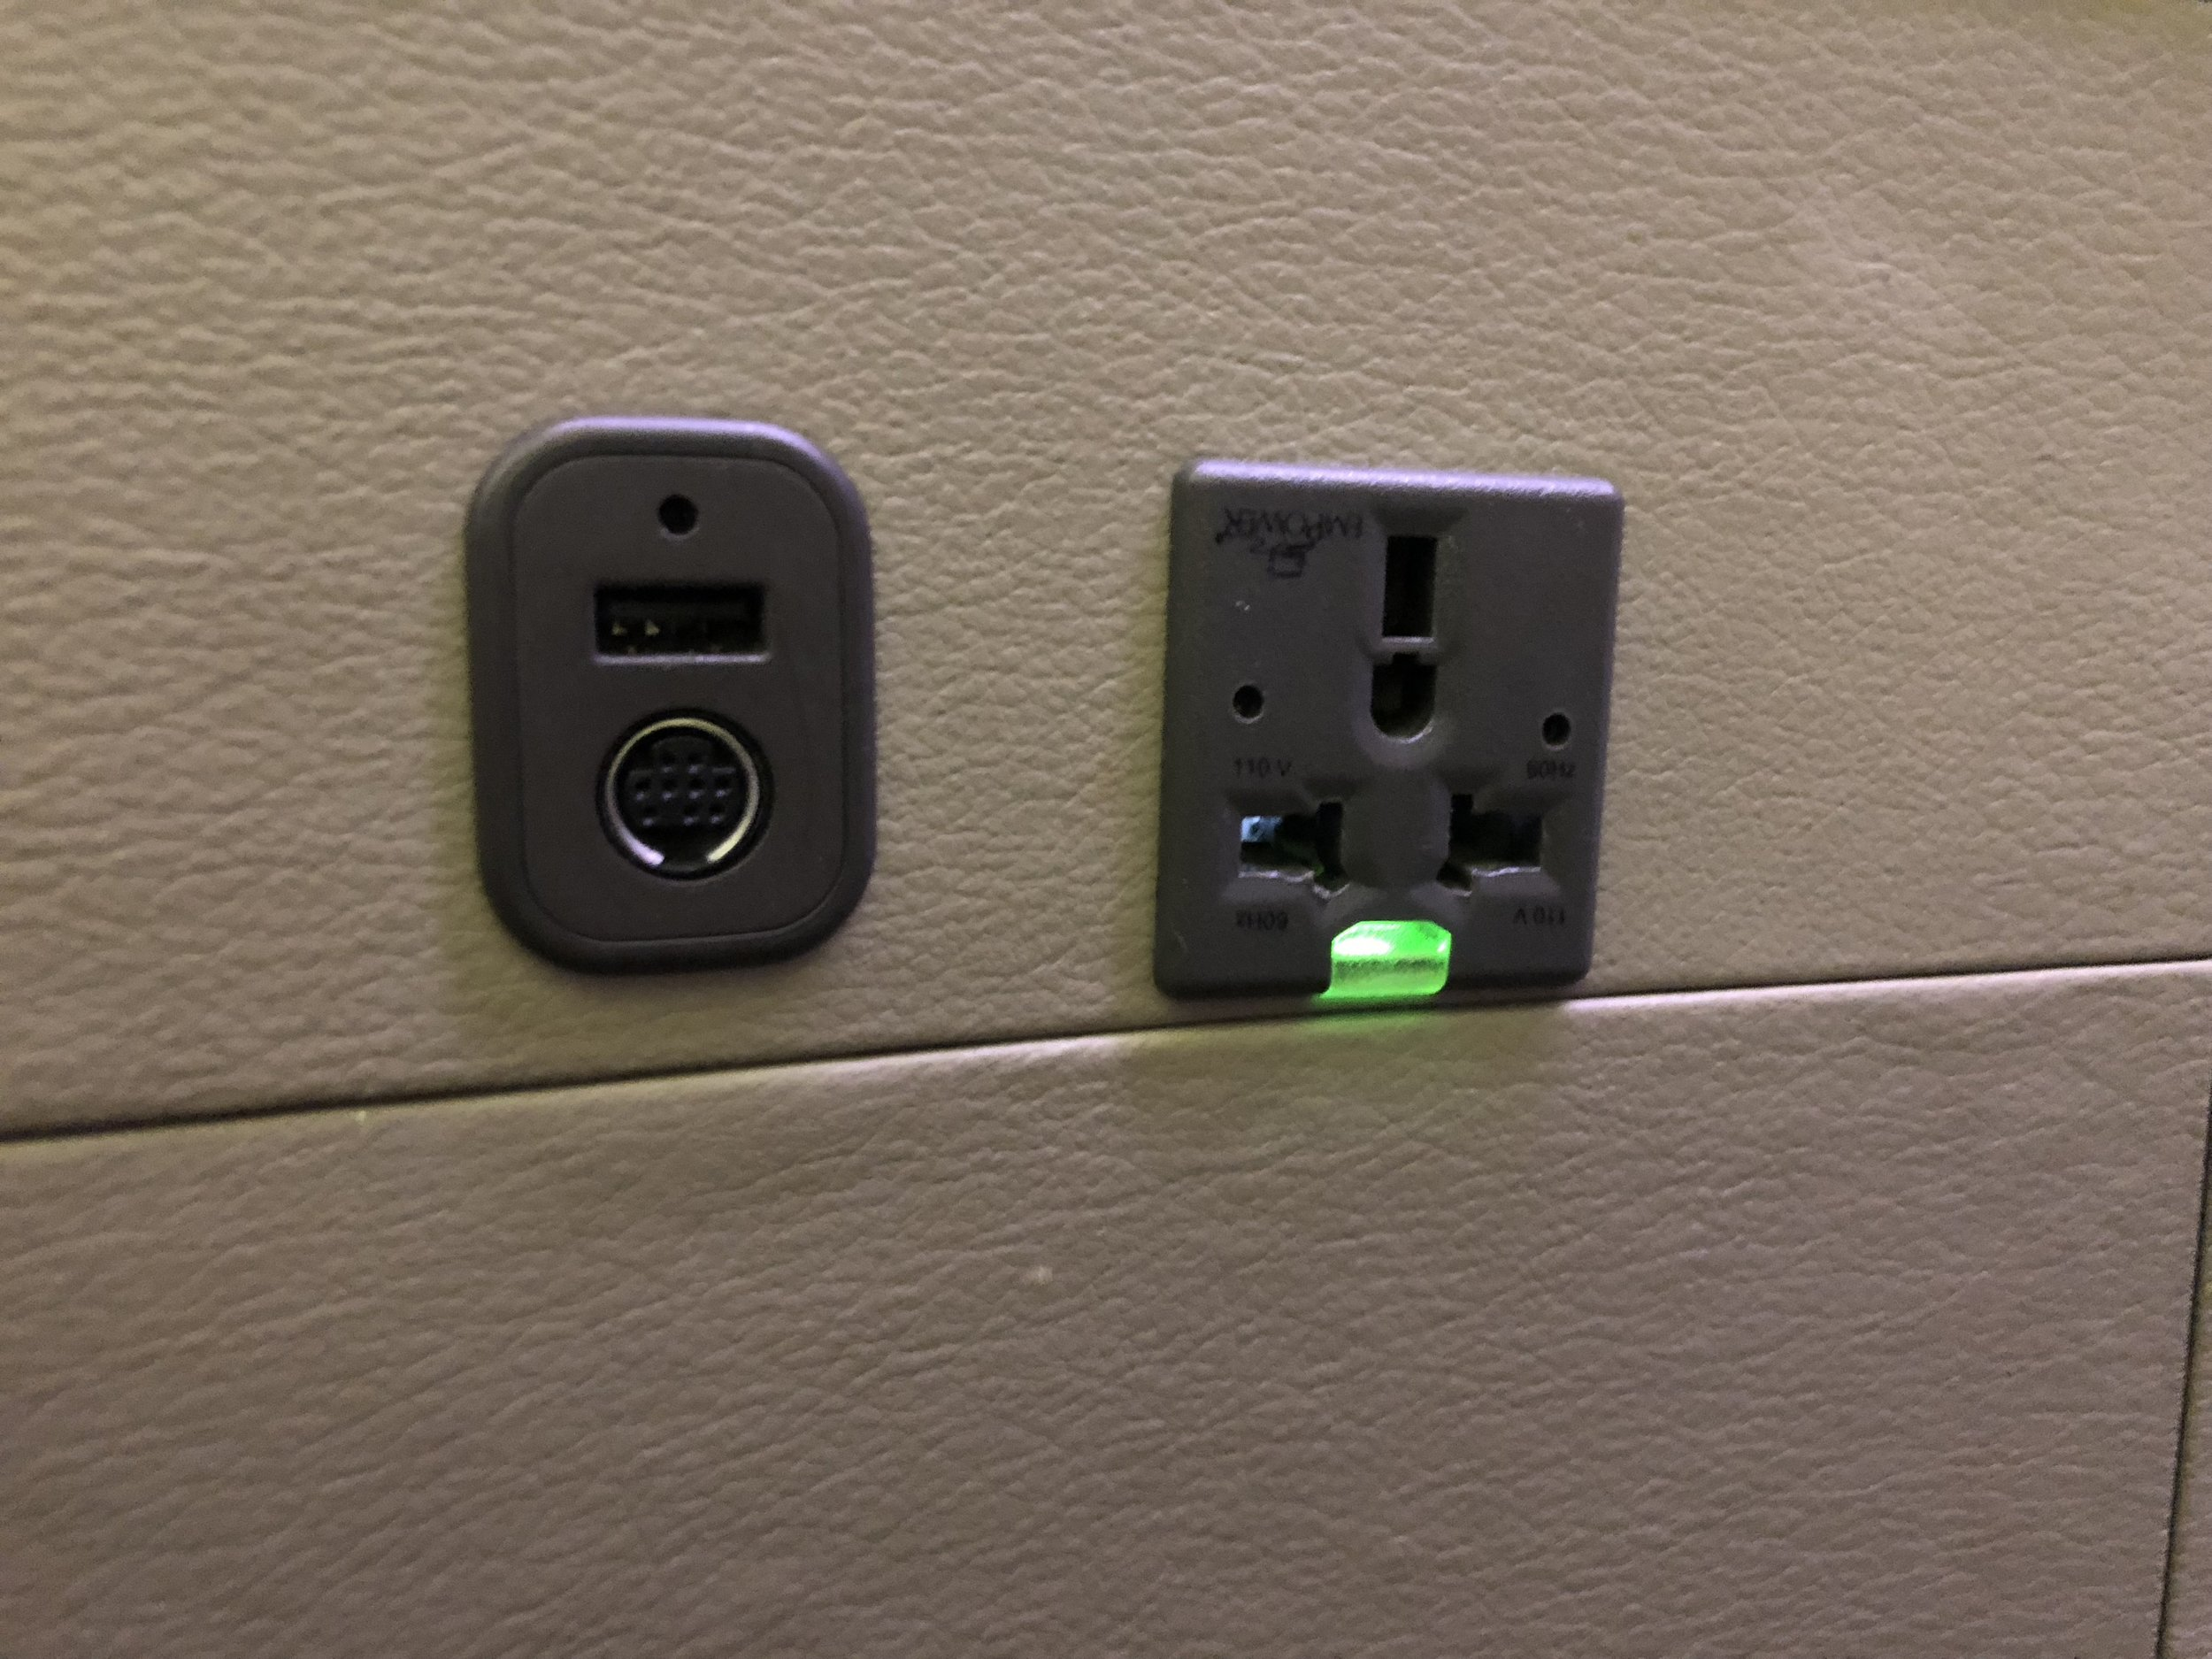 Charging stations at the side of the seat